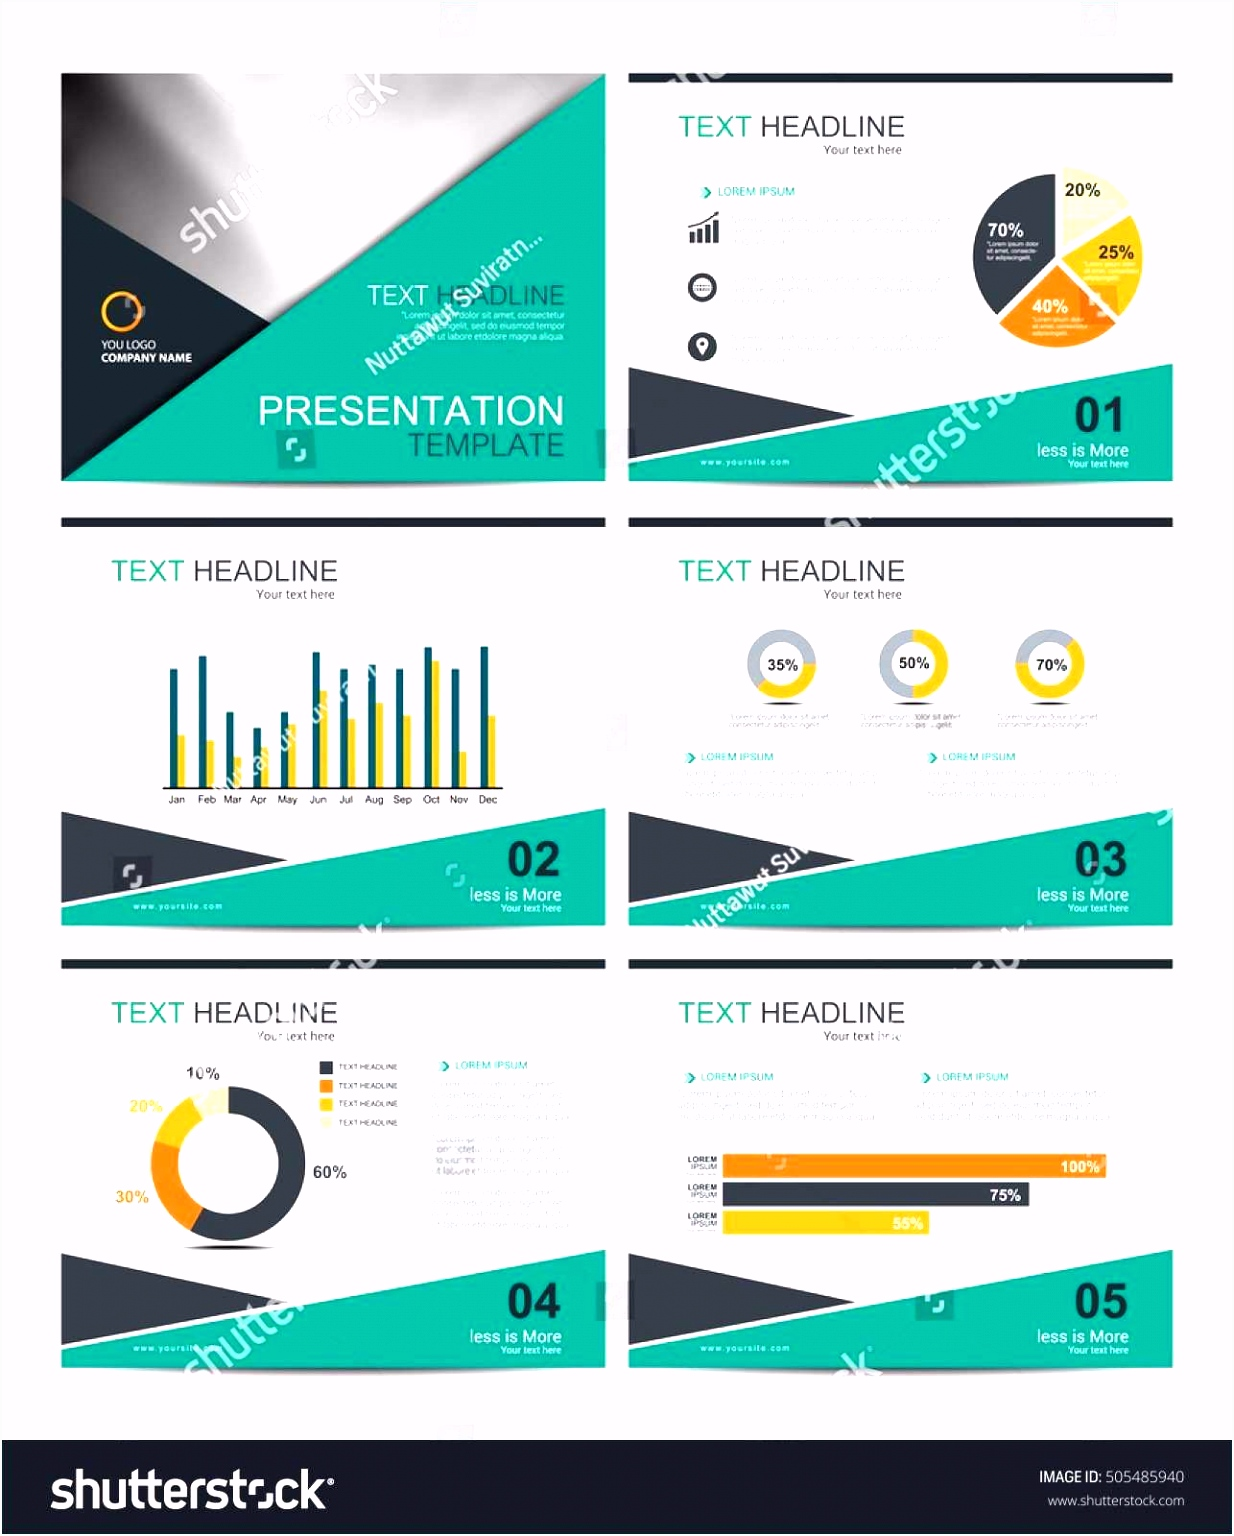 Keynote Vorlagen ✓ Fresh Collection Free Keynote Templates for Powerpoint Y4gx15xsb1 D4qjvuhsdu